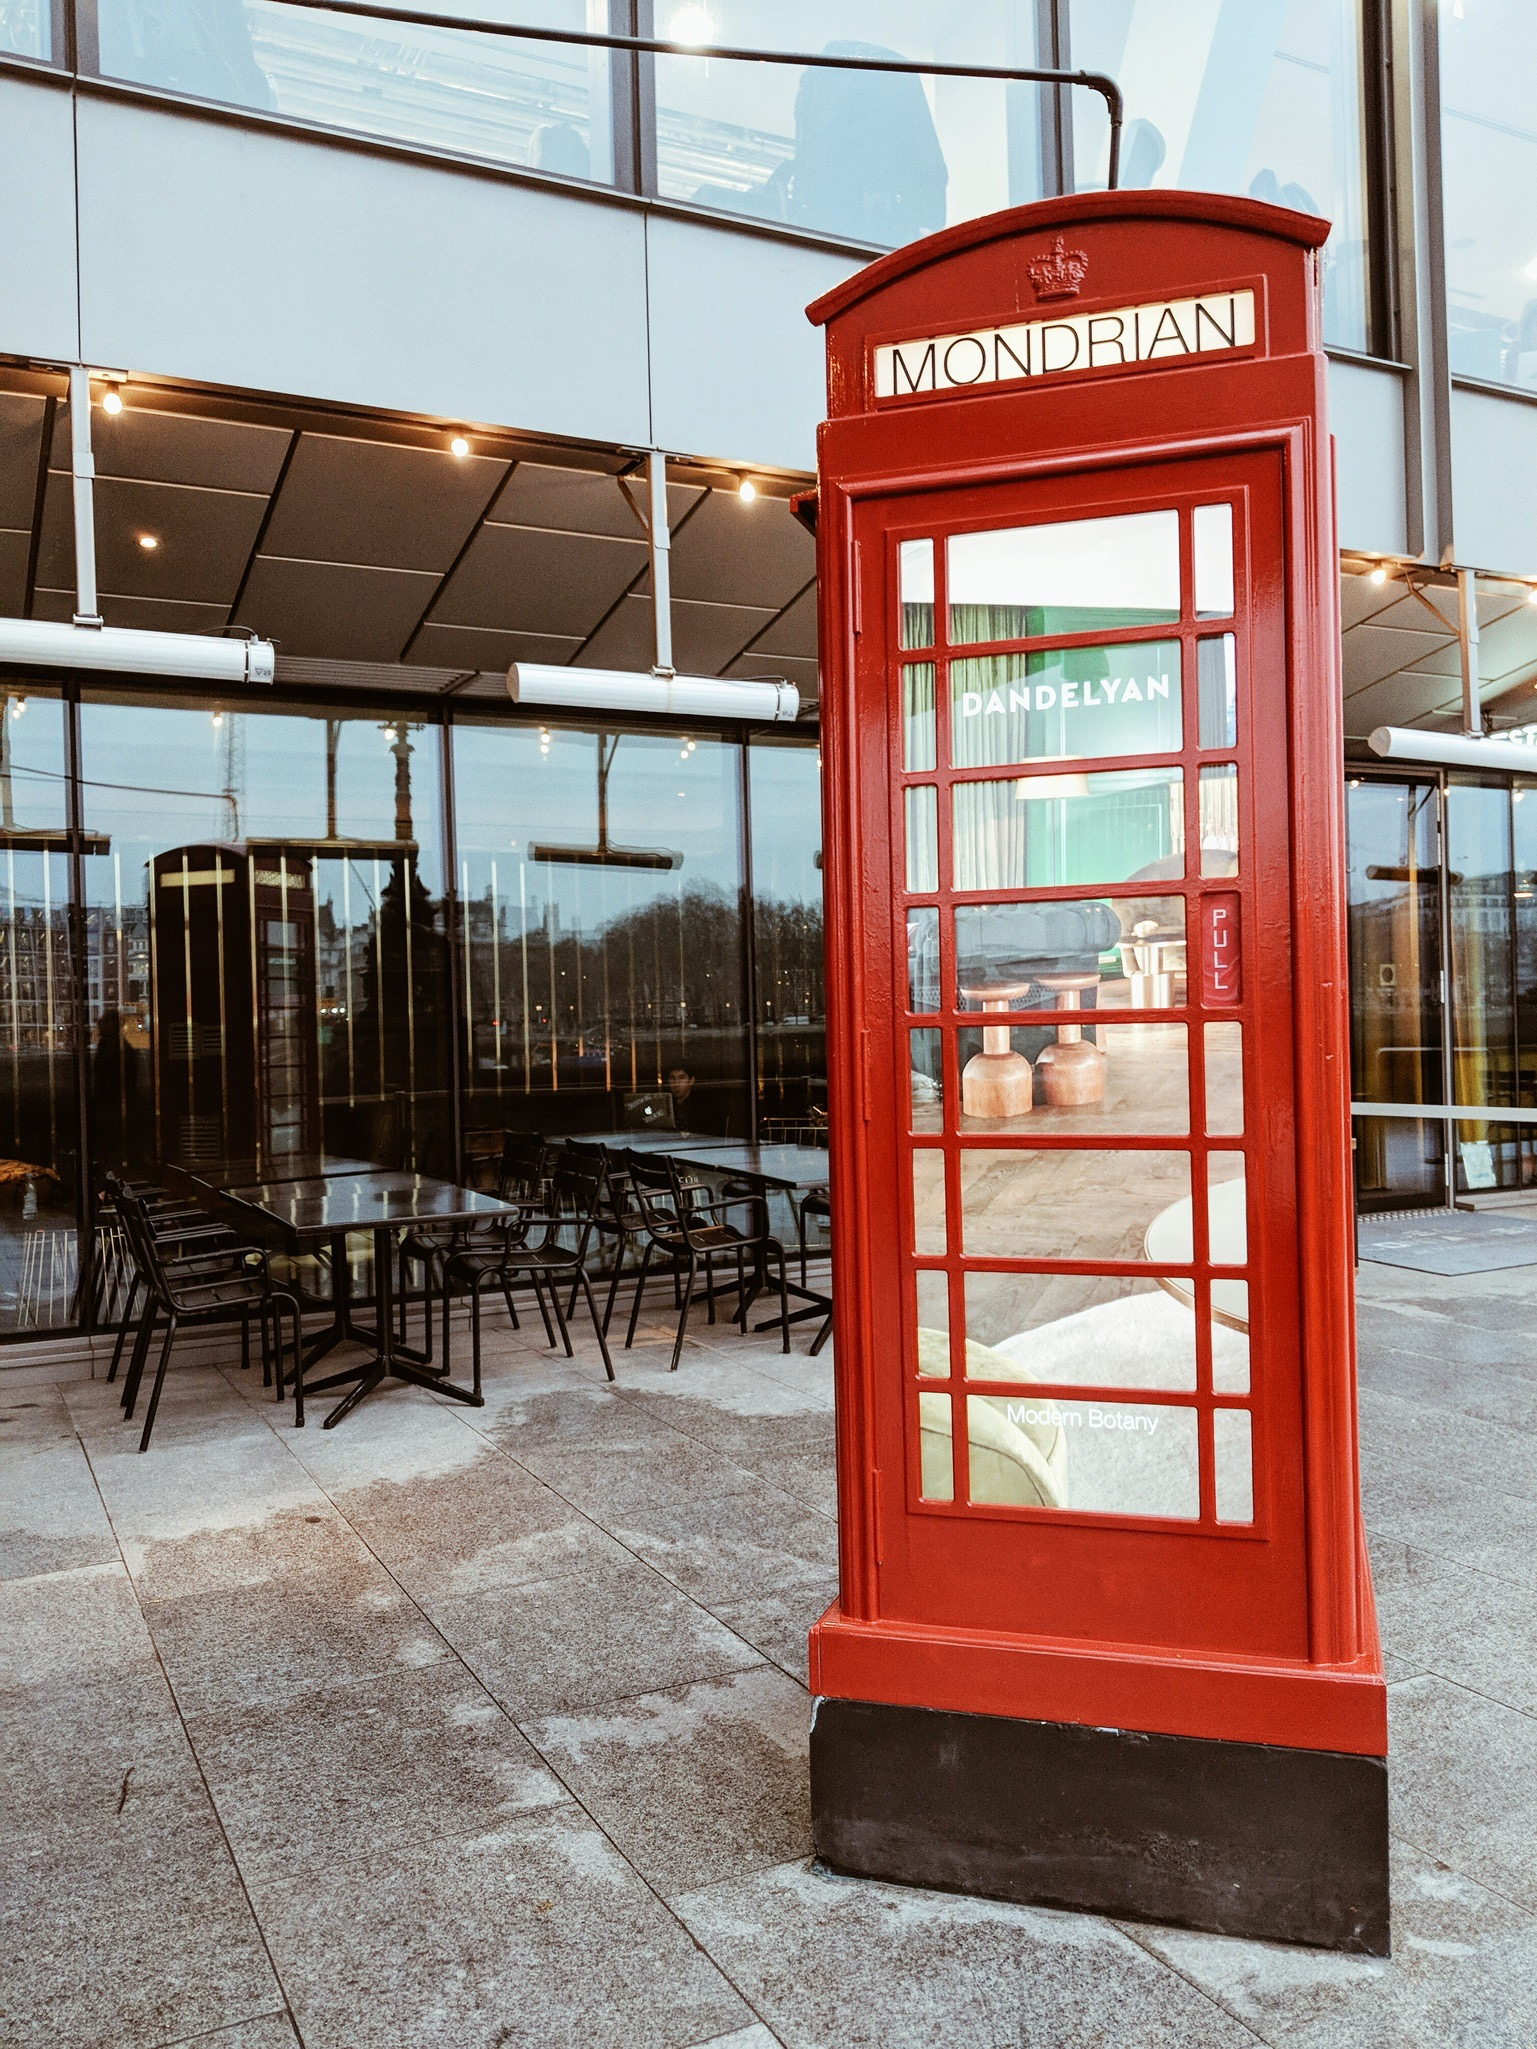 Mondrian Hotel Cocoa Chelsea morgans girls night phone box red telephone thames